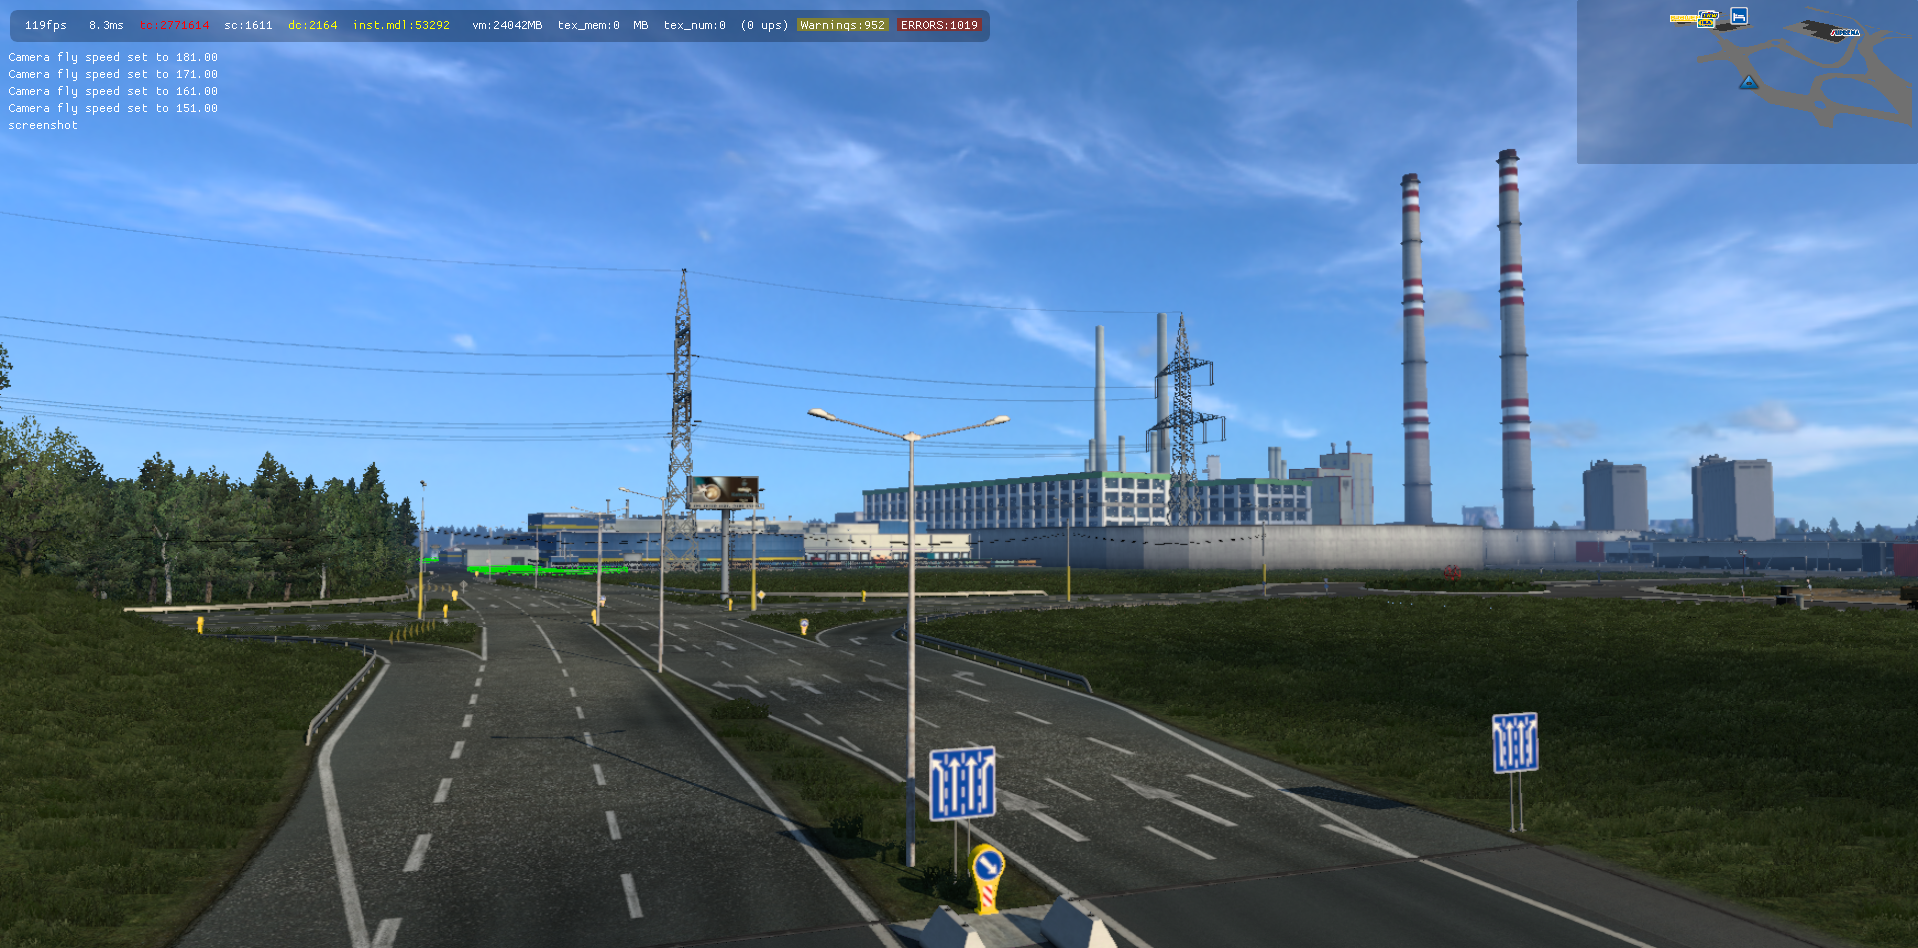 ets2_20210612_134323_00.png